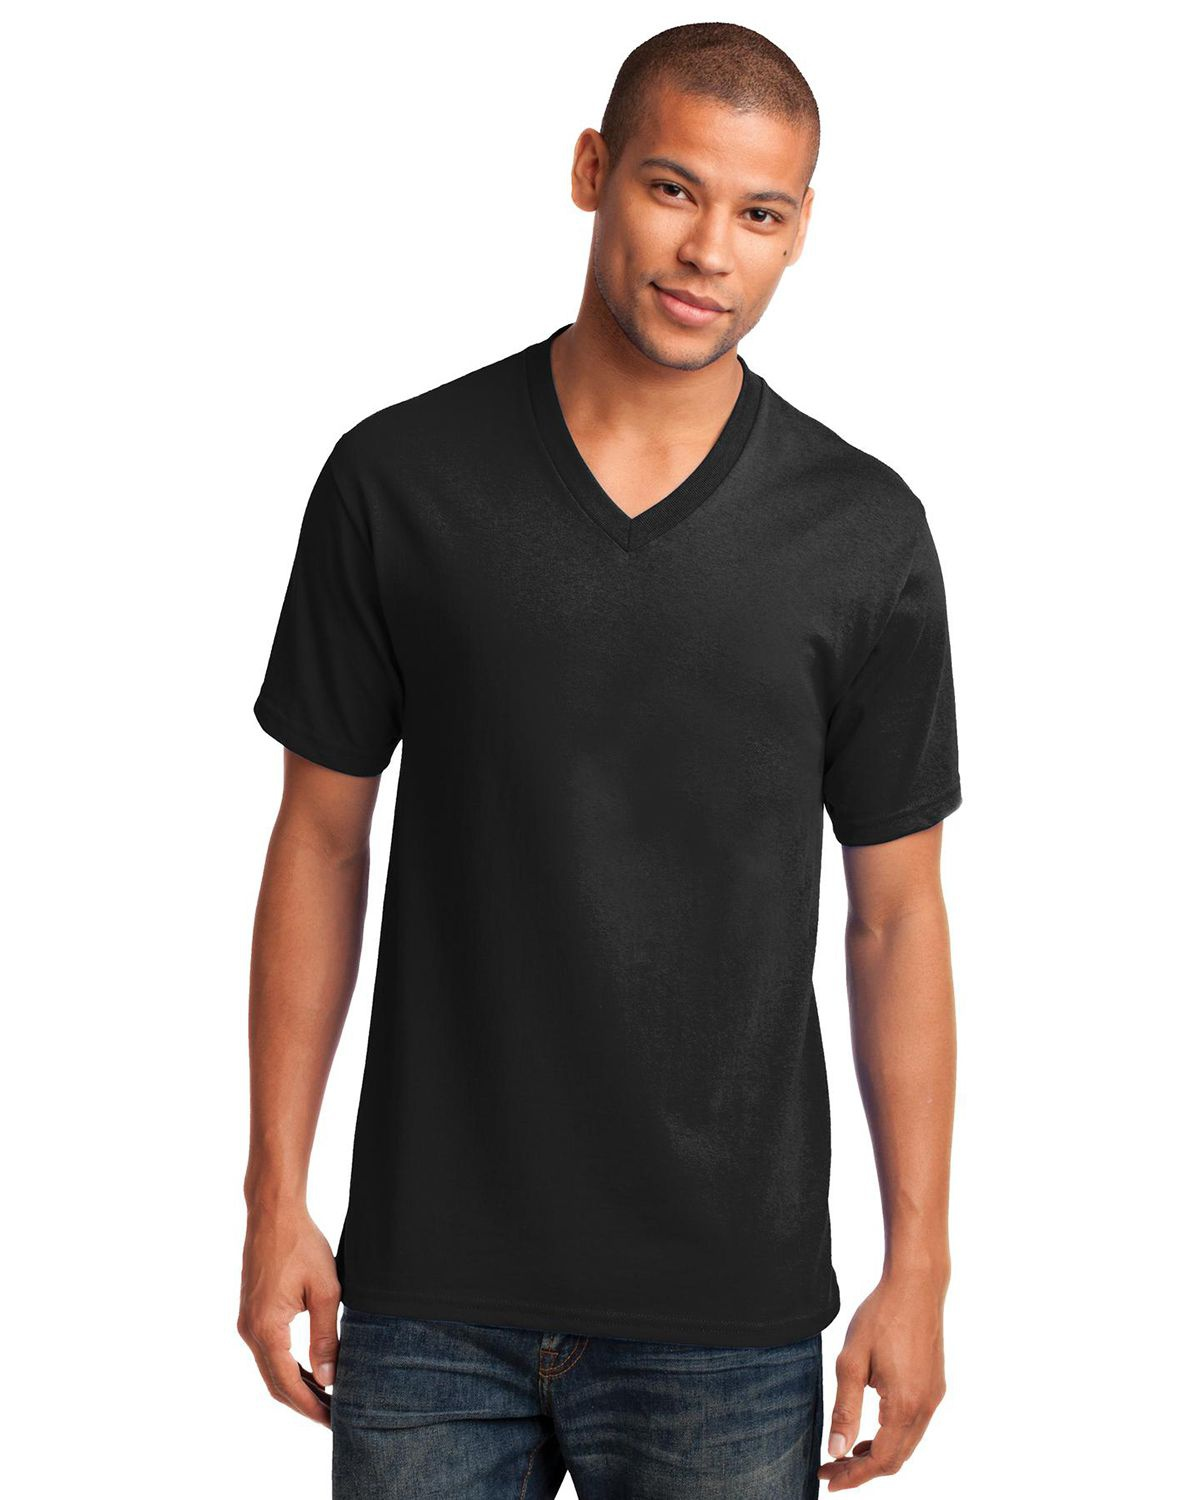 d56e5c108796 Port & Company PC54V | Buy Core Cotton V-Neck Tee - VeeTrends.com